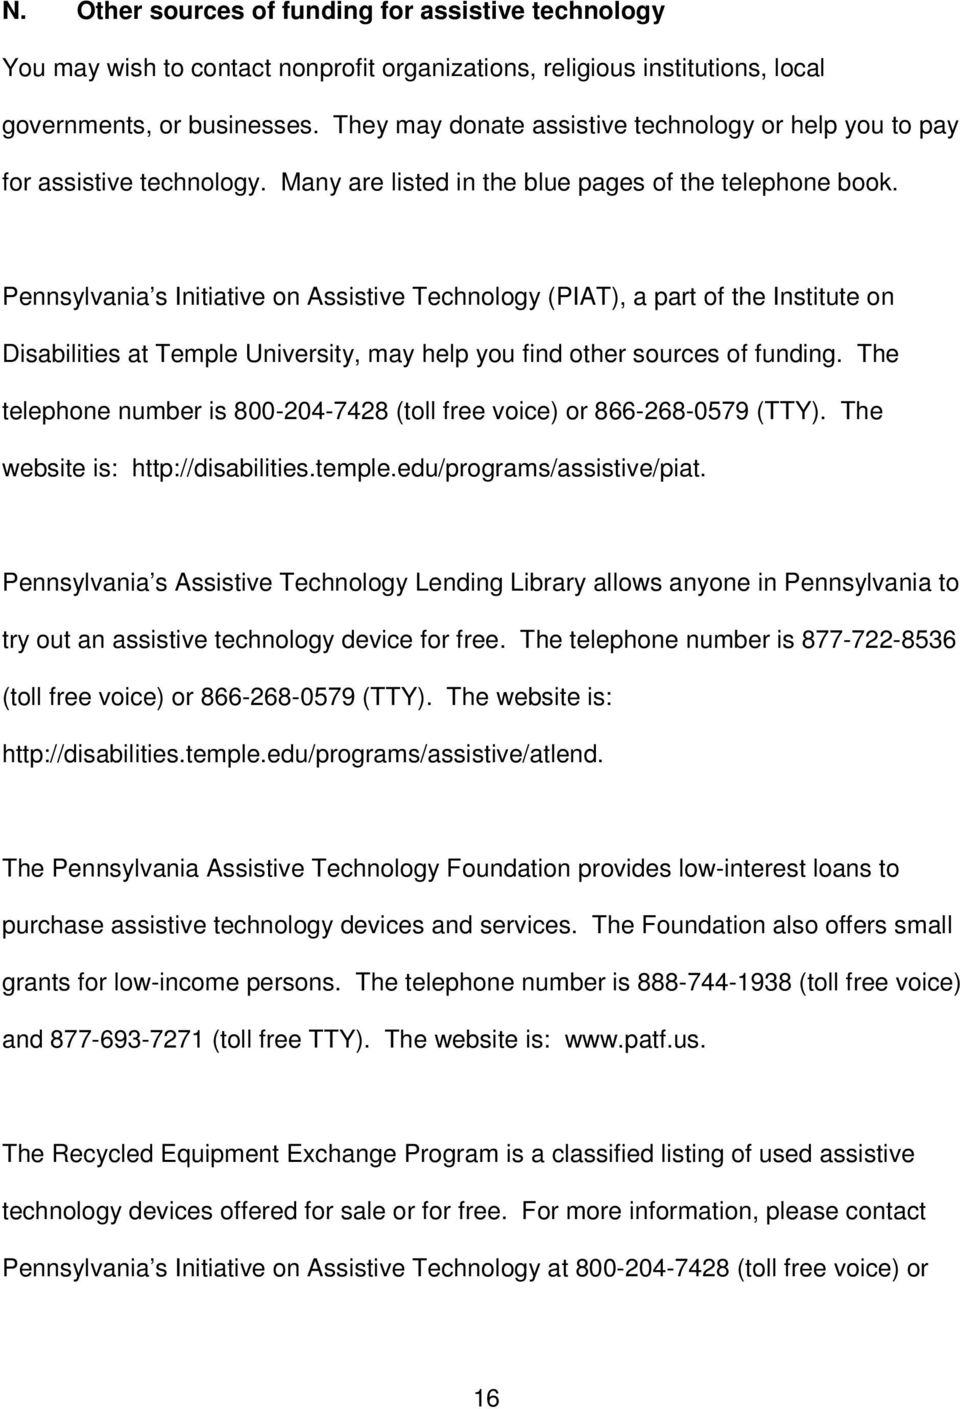 Pennsylvania s Initiative on Assistive Technology (PIAT), a part of the Institute on Disabilities at Temple University, may help you find other sources of funding.